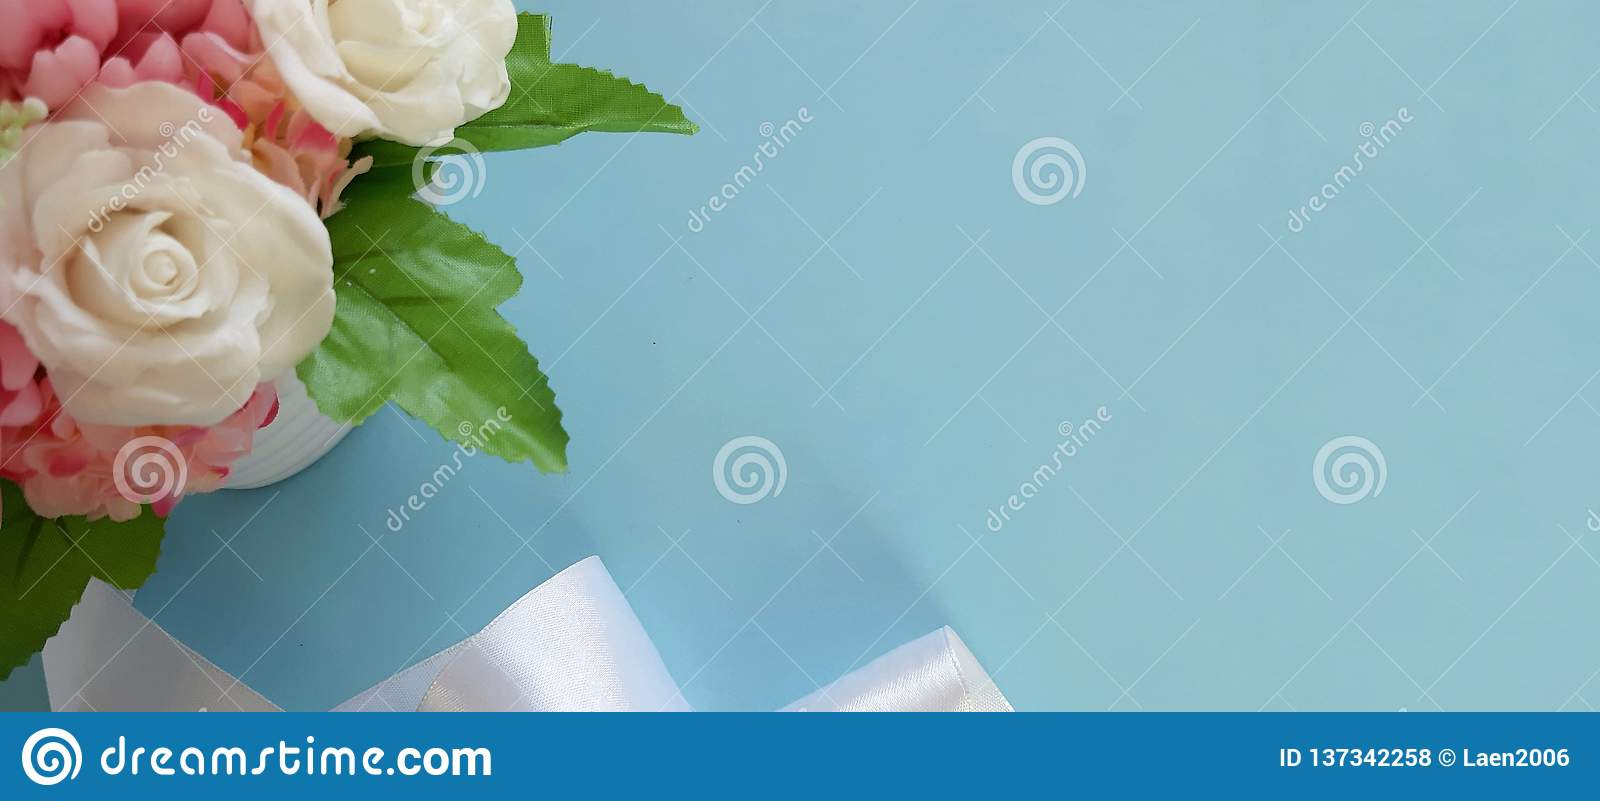 Bouquet of roses, silk ribbon on blue background.